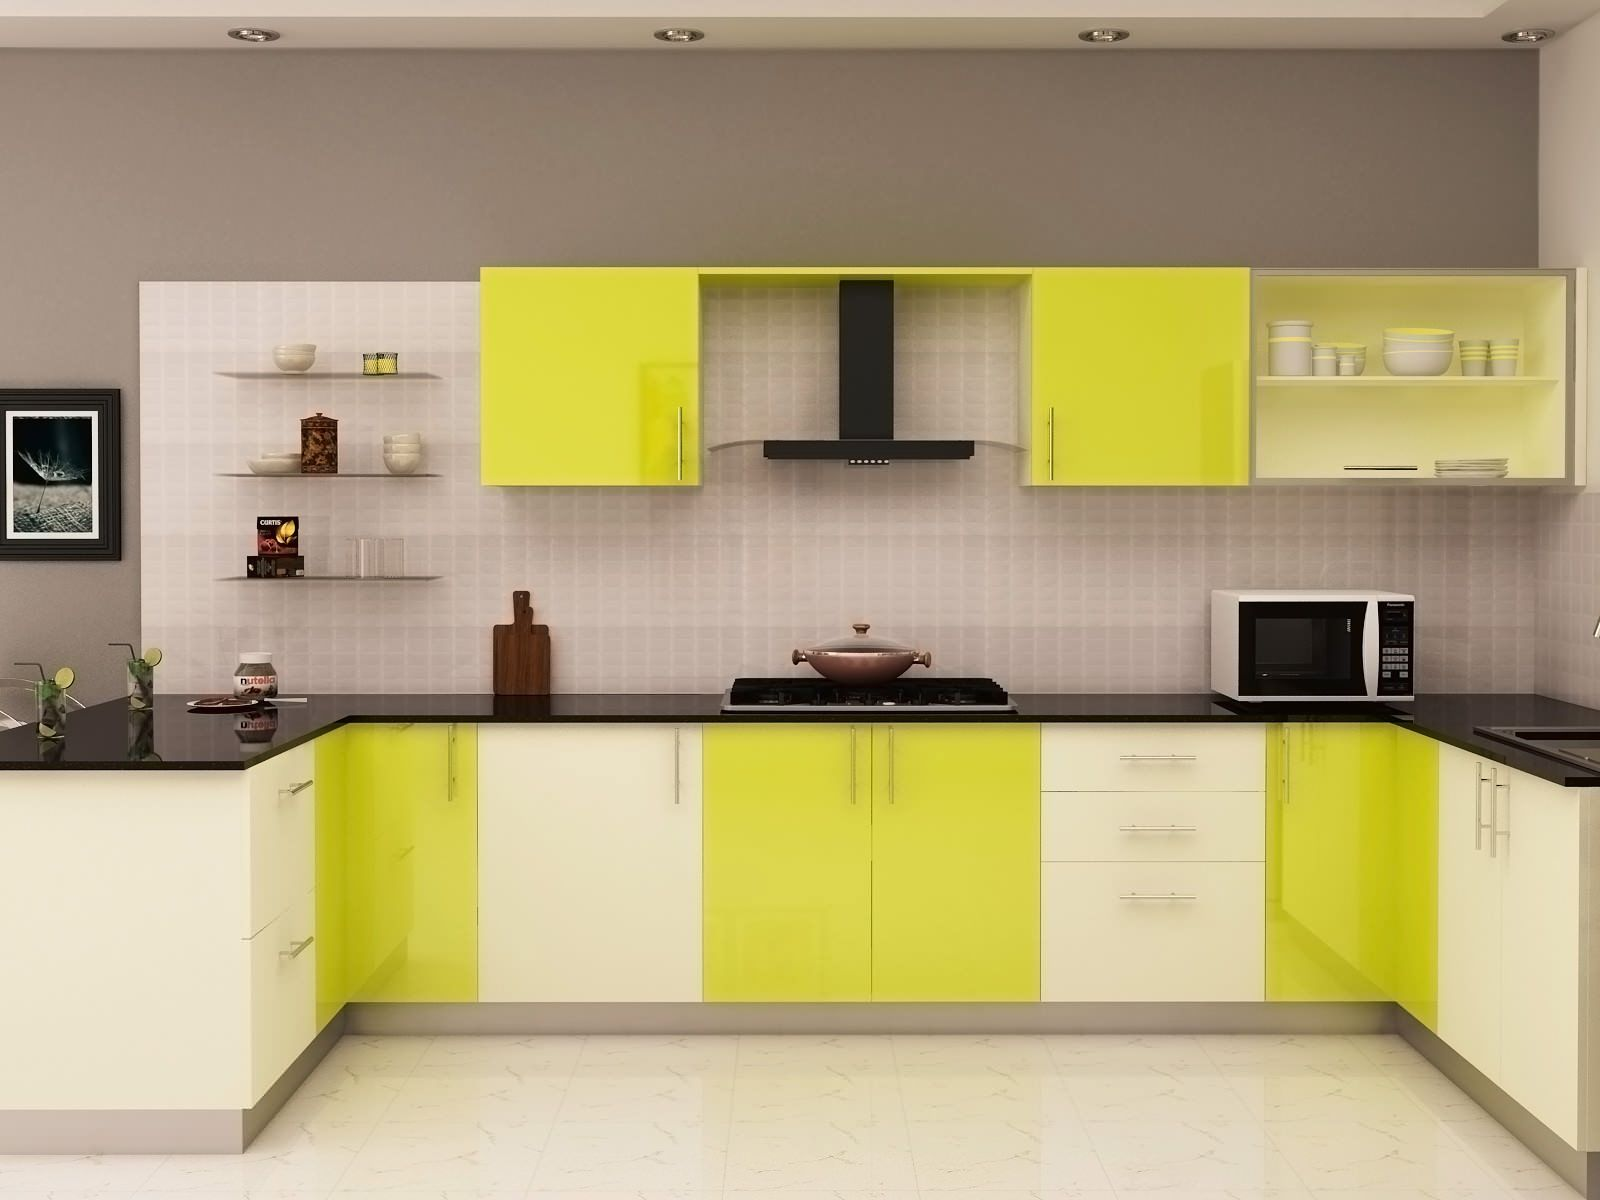 Kitchen Trolley Designs Httplatuluinfofeed Photos Small Design For Mobile Phones High Quality